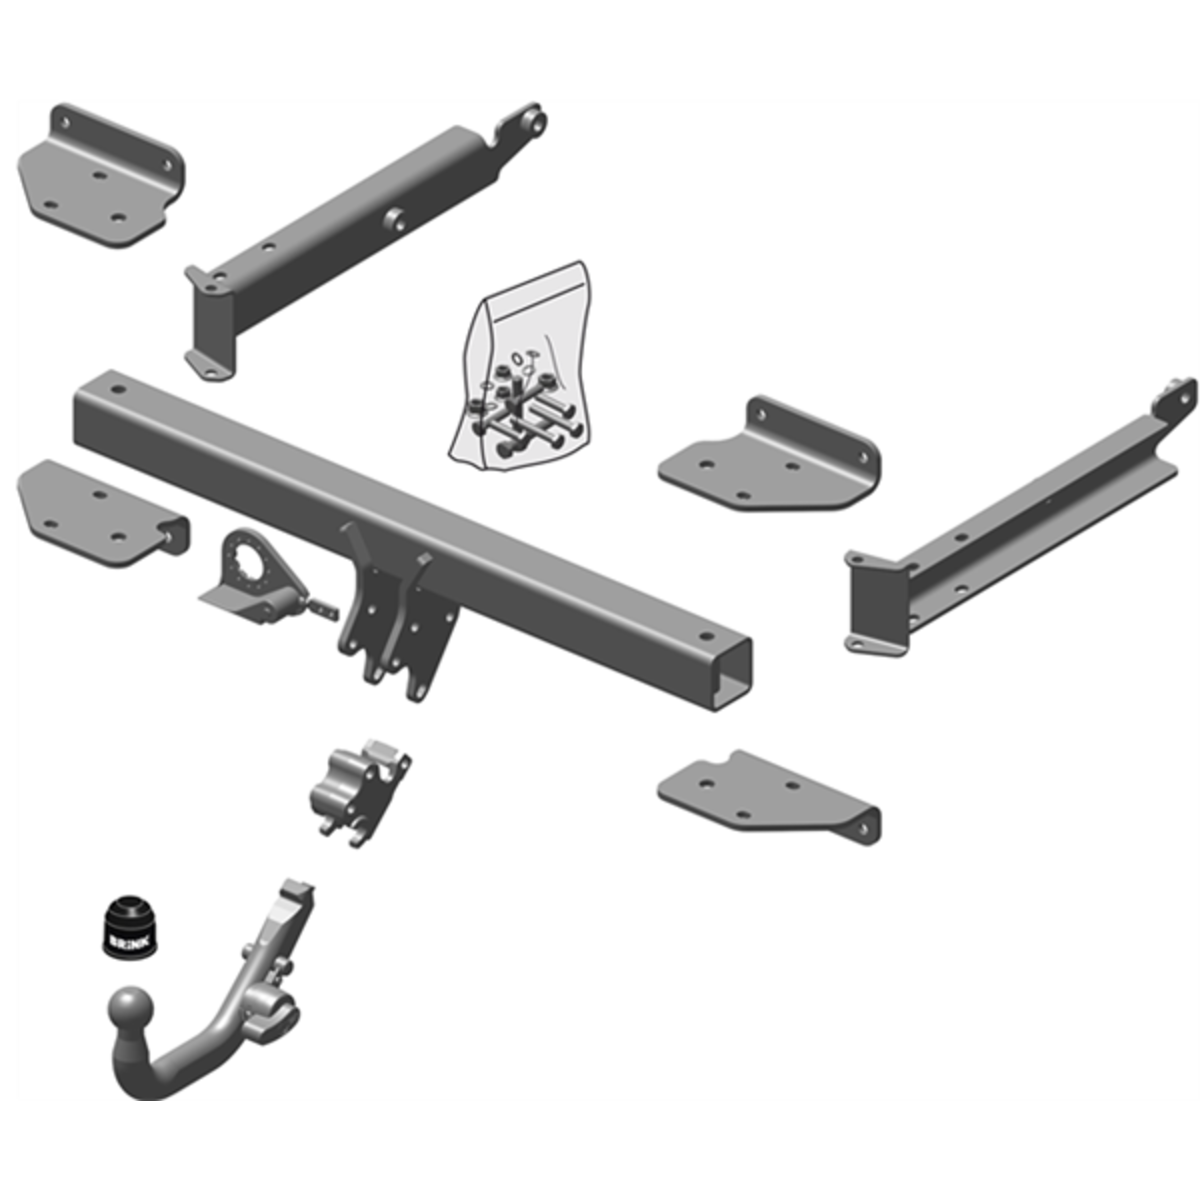 Brink Towbar to suit MERCEDES-BENZ M-CLASS (07/2005 - on)